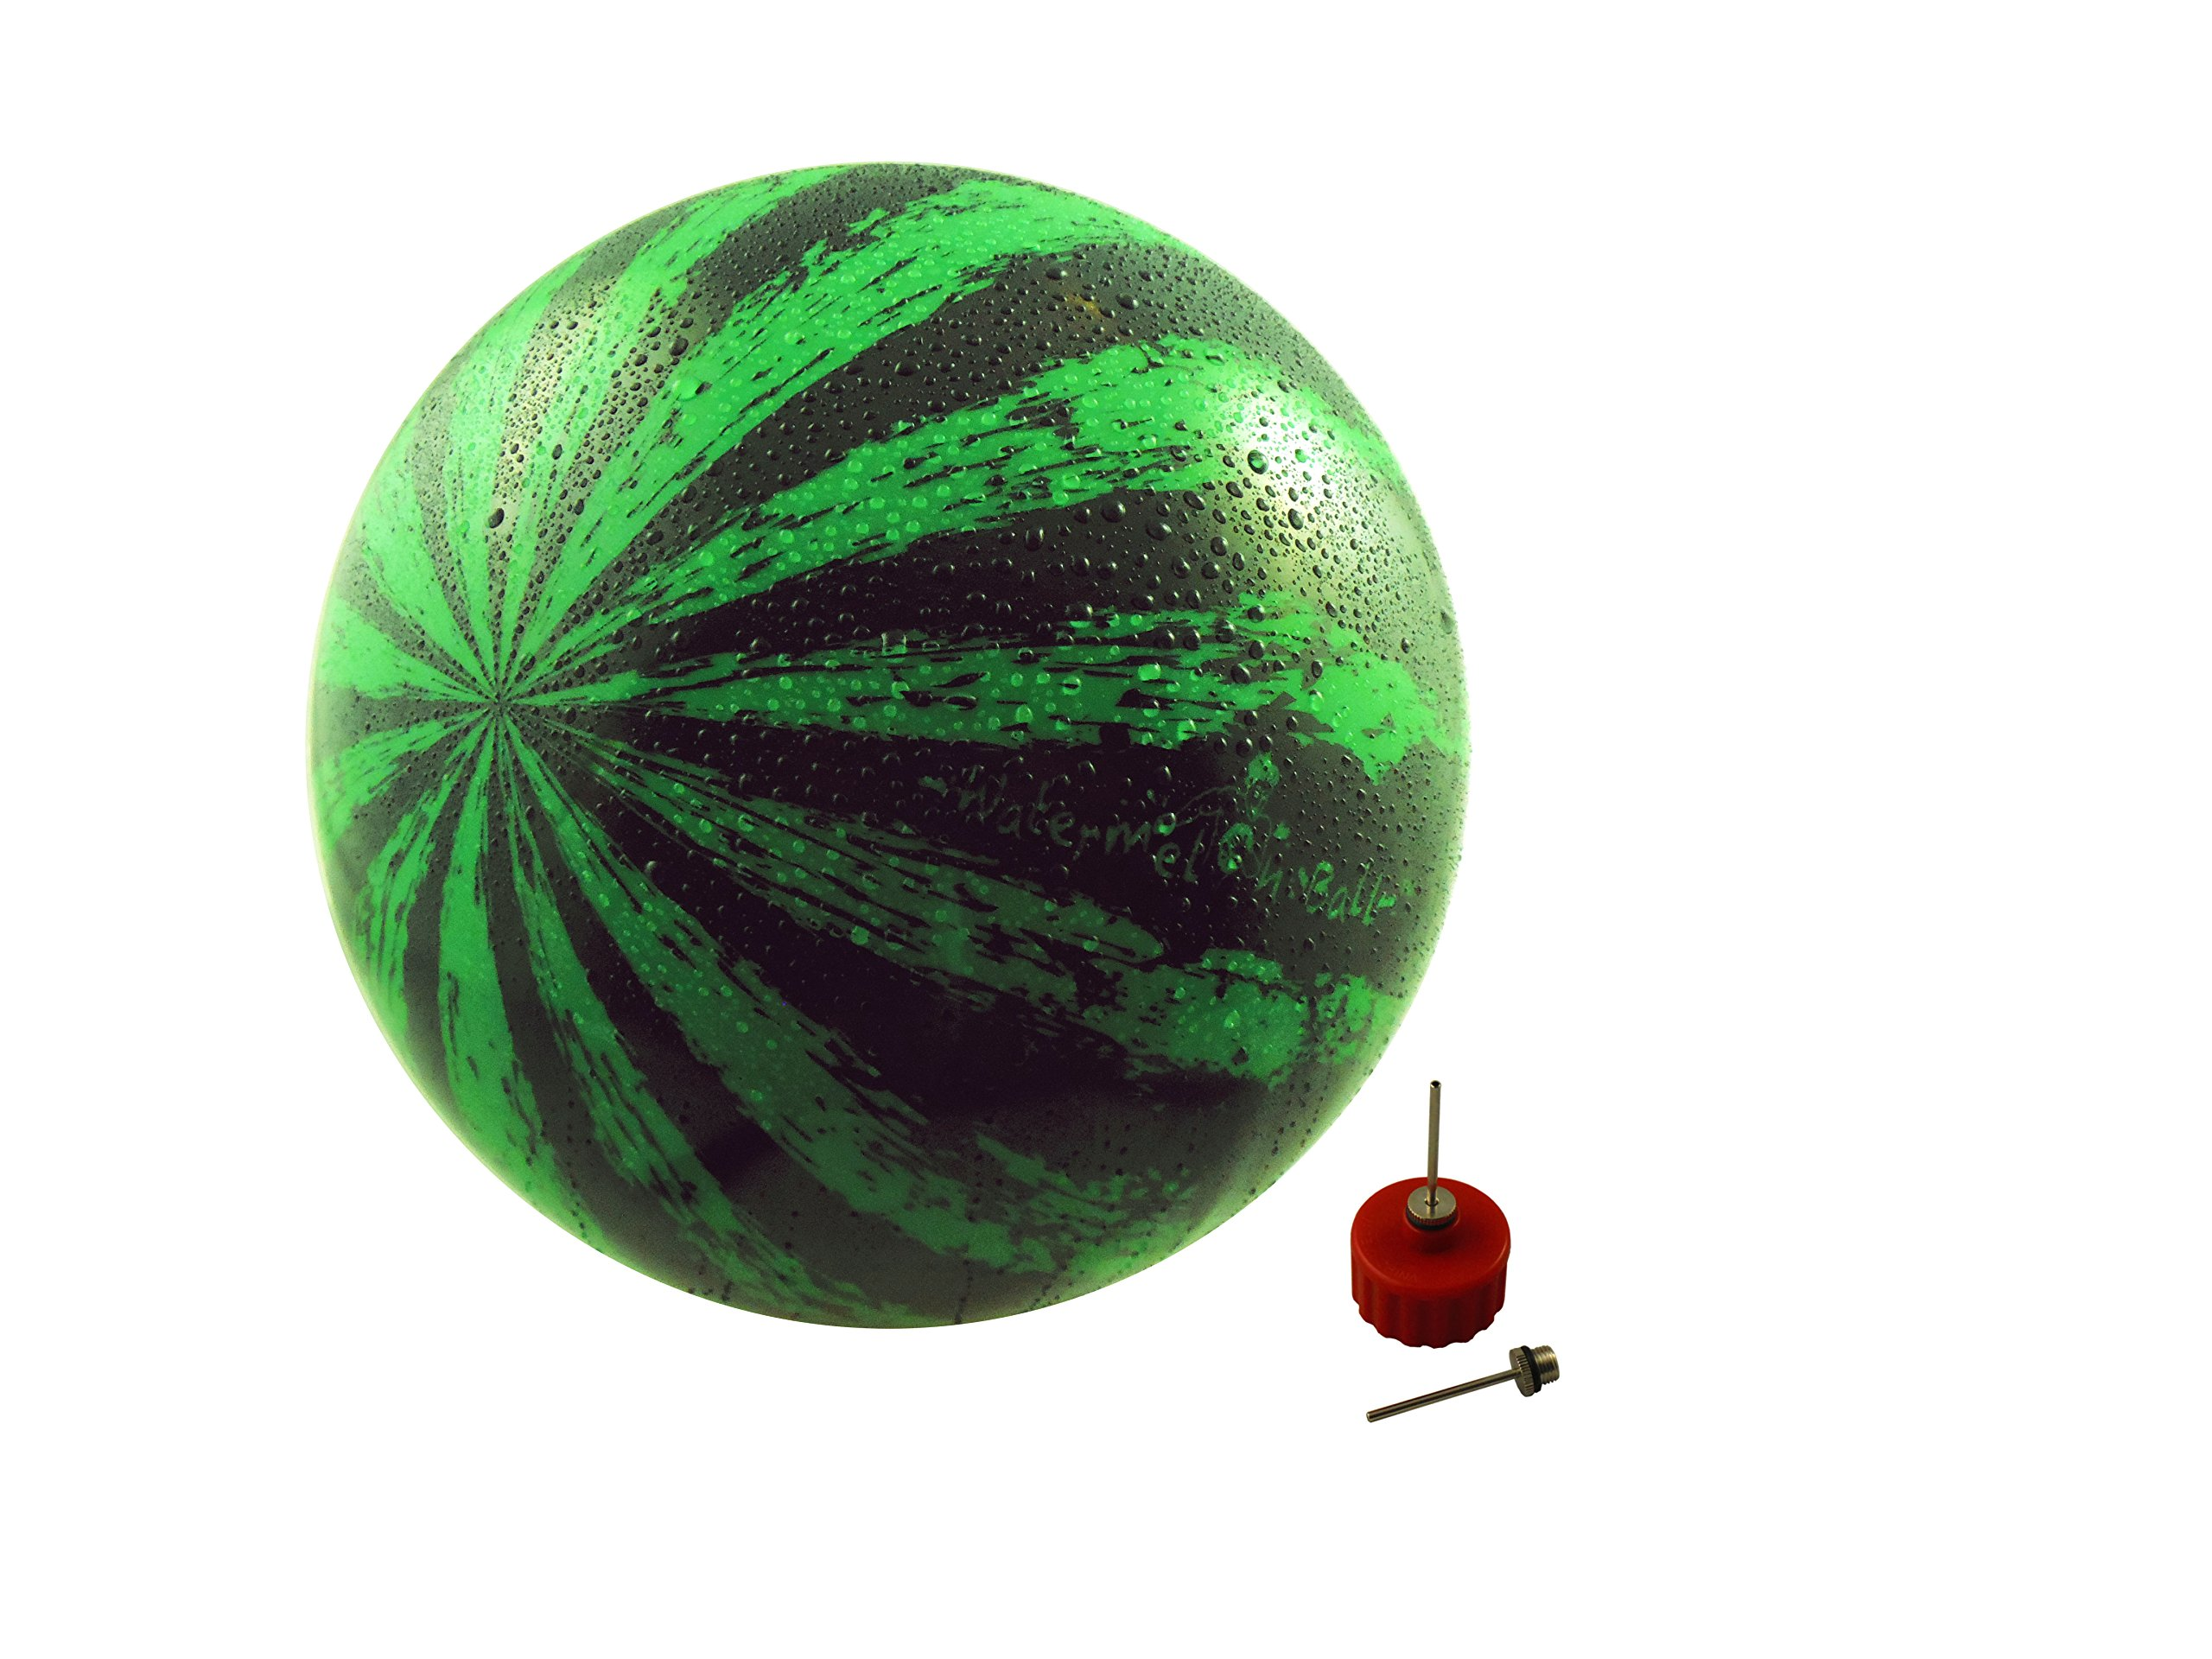 Watermelon ball the ultimate swimming pool game ebay - Watermelon ball swimming pool game ...